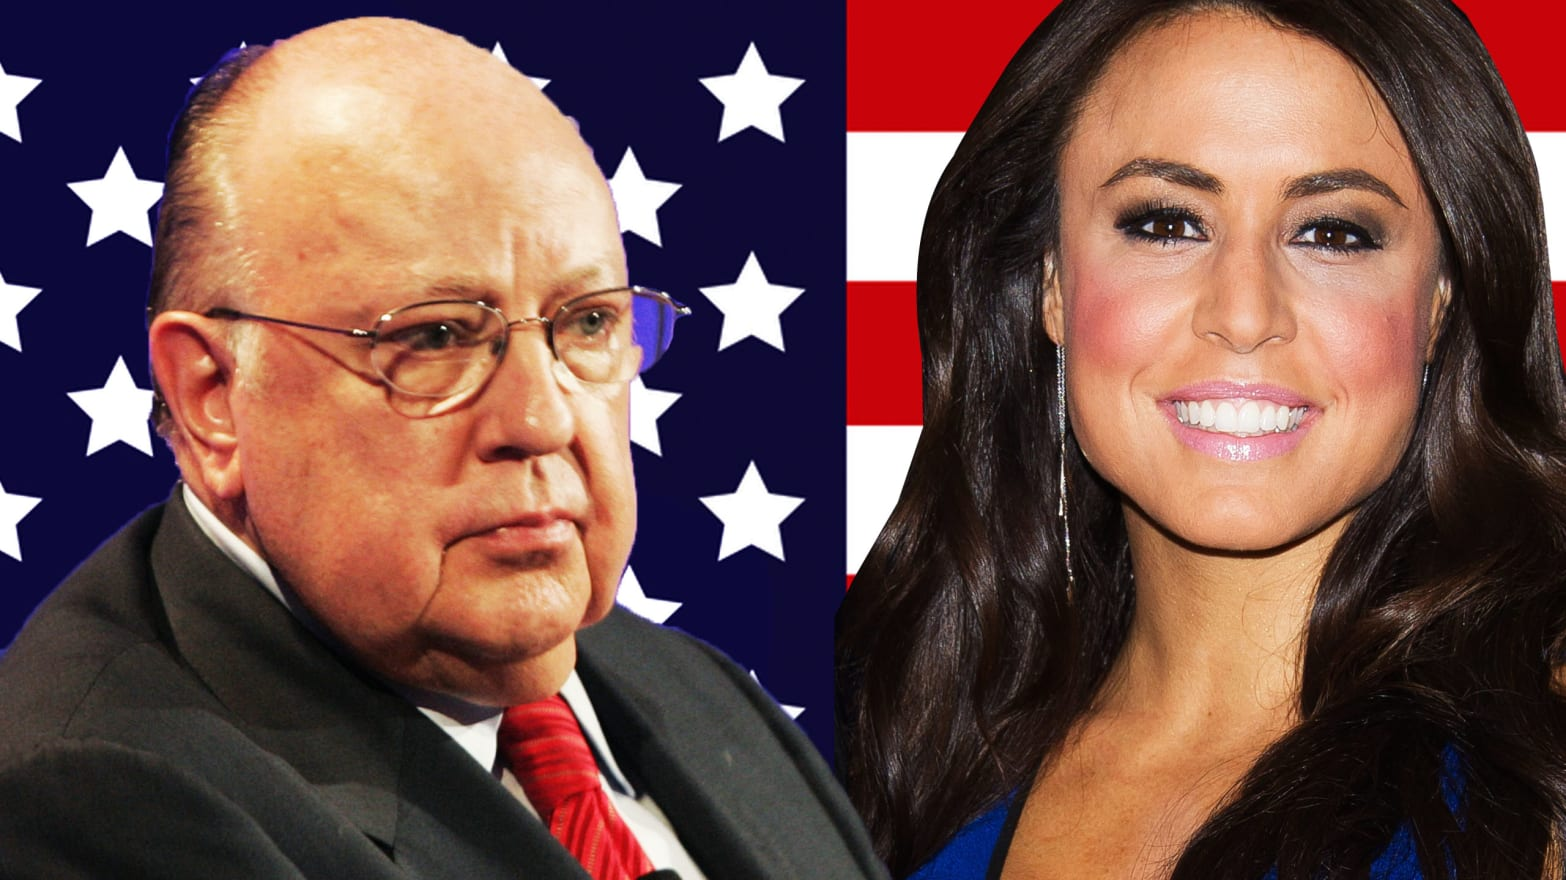 Andrea Prince Sex andrea tantaros: roger ailes targeted 'wounded birds' for